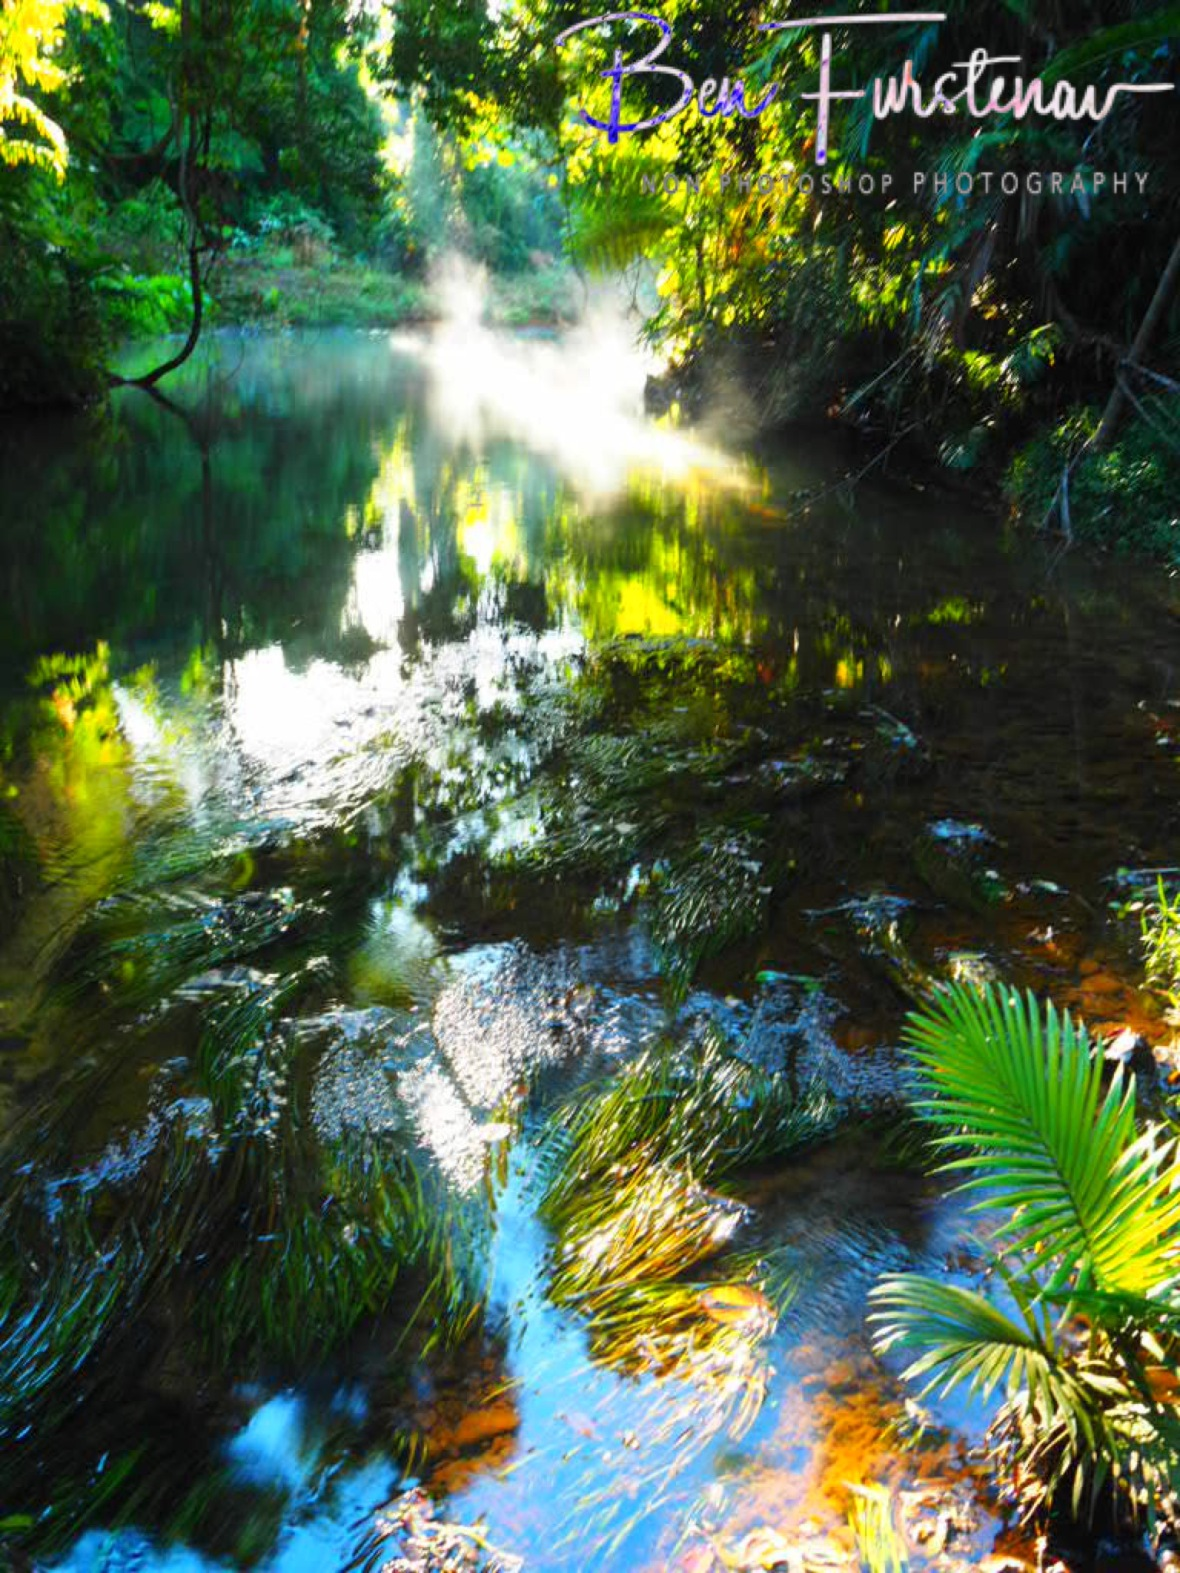 Underwater plants rock gently to the creek's rhythms at Mission Beach, Tropical Queensland, Australia